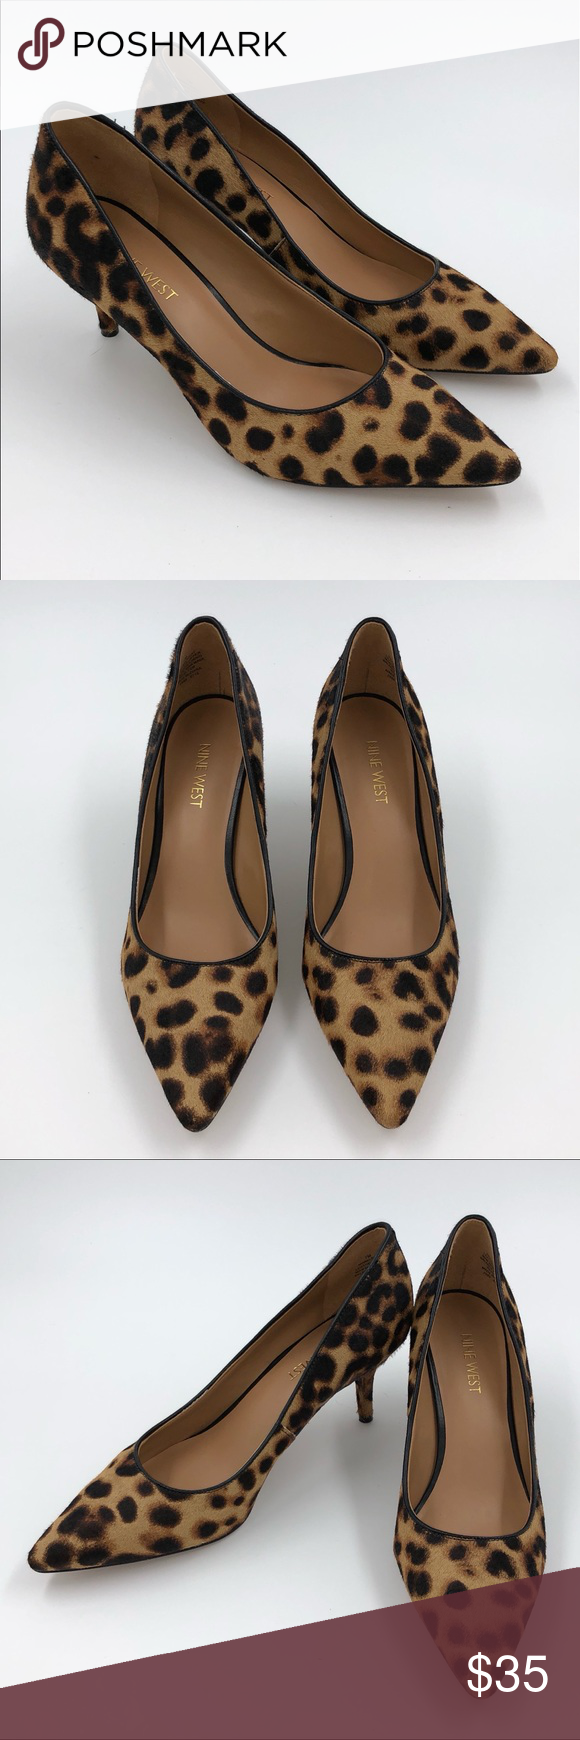 03ed5eb30d34 Nine West Womens Margot Shoes 7 Calf Hair Leopard Nine West Womens Margot  Shoes 7 Calf Hair Leopard Print Pumps Pointed Toe Heels Heel height: 2.5  inches ...